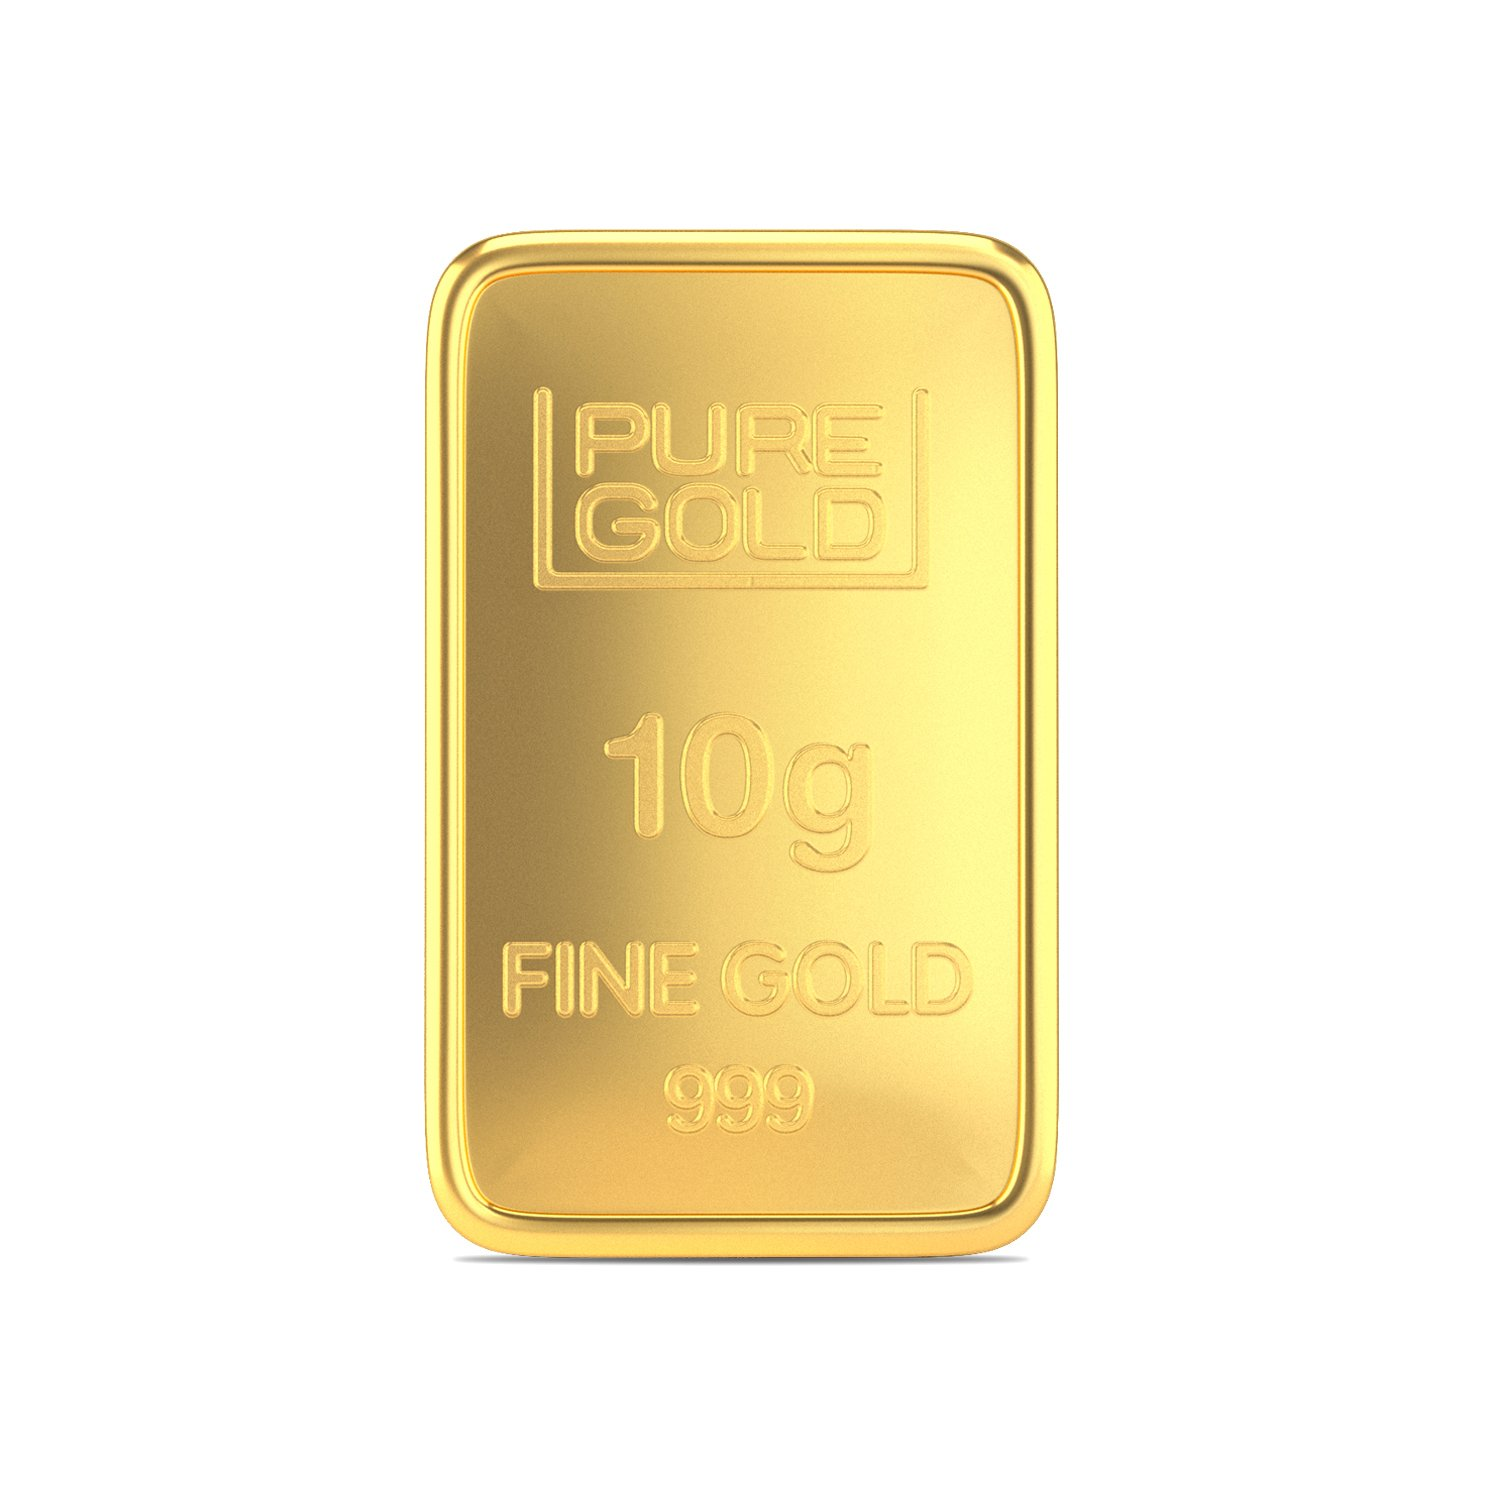 Buy Joyalukkas Assayer Certified 10 Grams 24k 999 Yellow Gold Precious Gold Bar Online At Low Prices In India Amazon Jewellery Store Amazon In